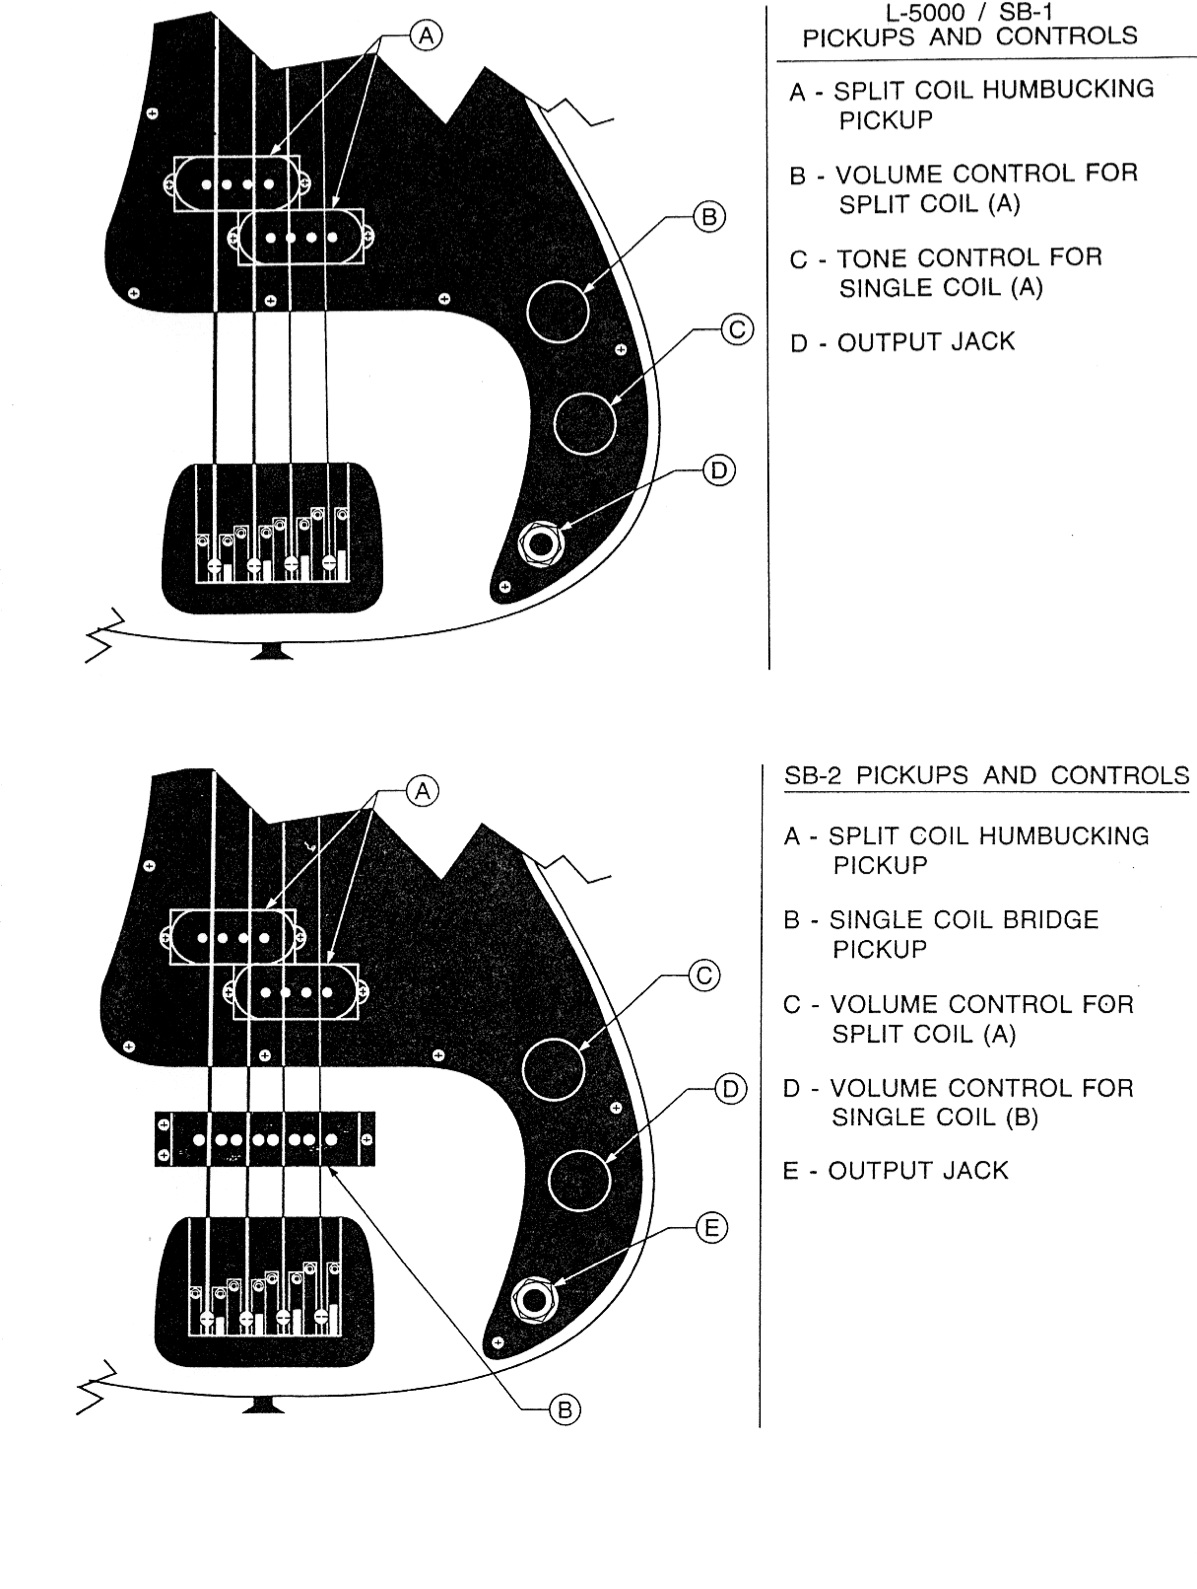 hss strat wiring diagram 3 phase variac g l diagrams and schematics full sized image is 370kb